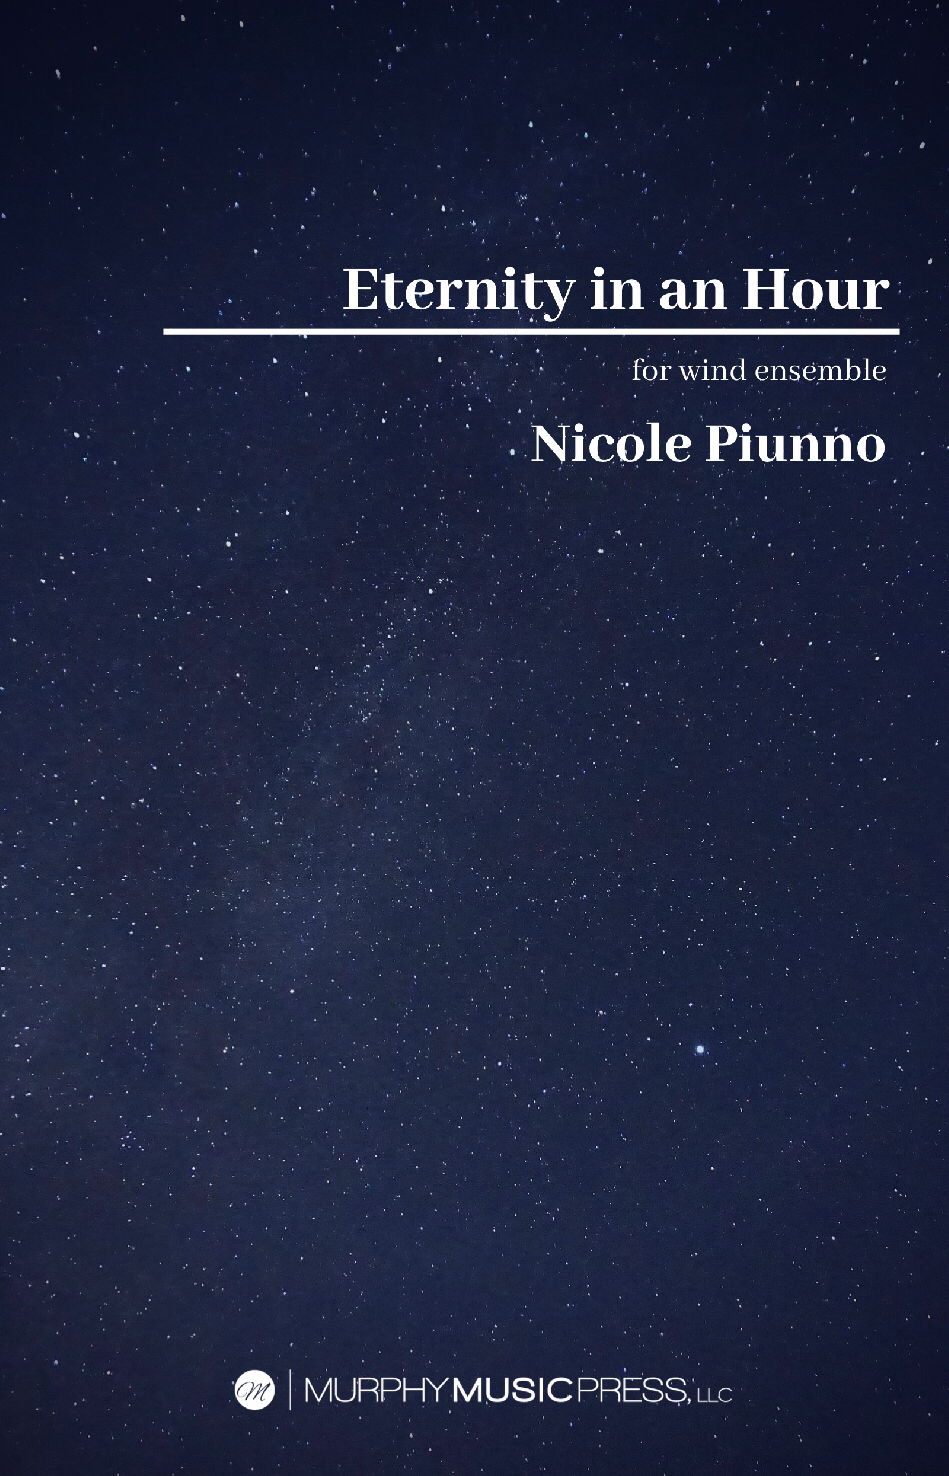 Eternity In An Hour by Nicole Piunno